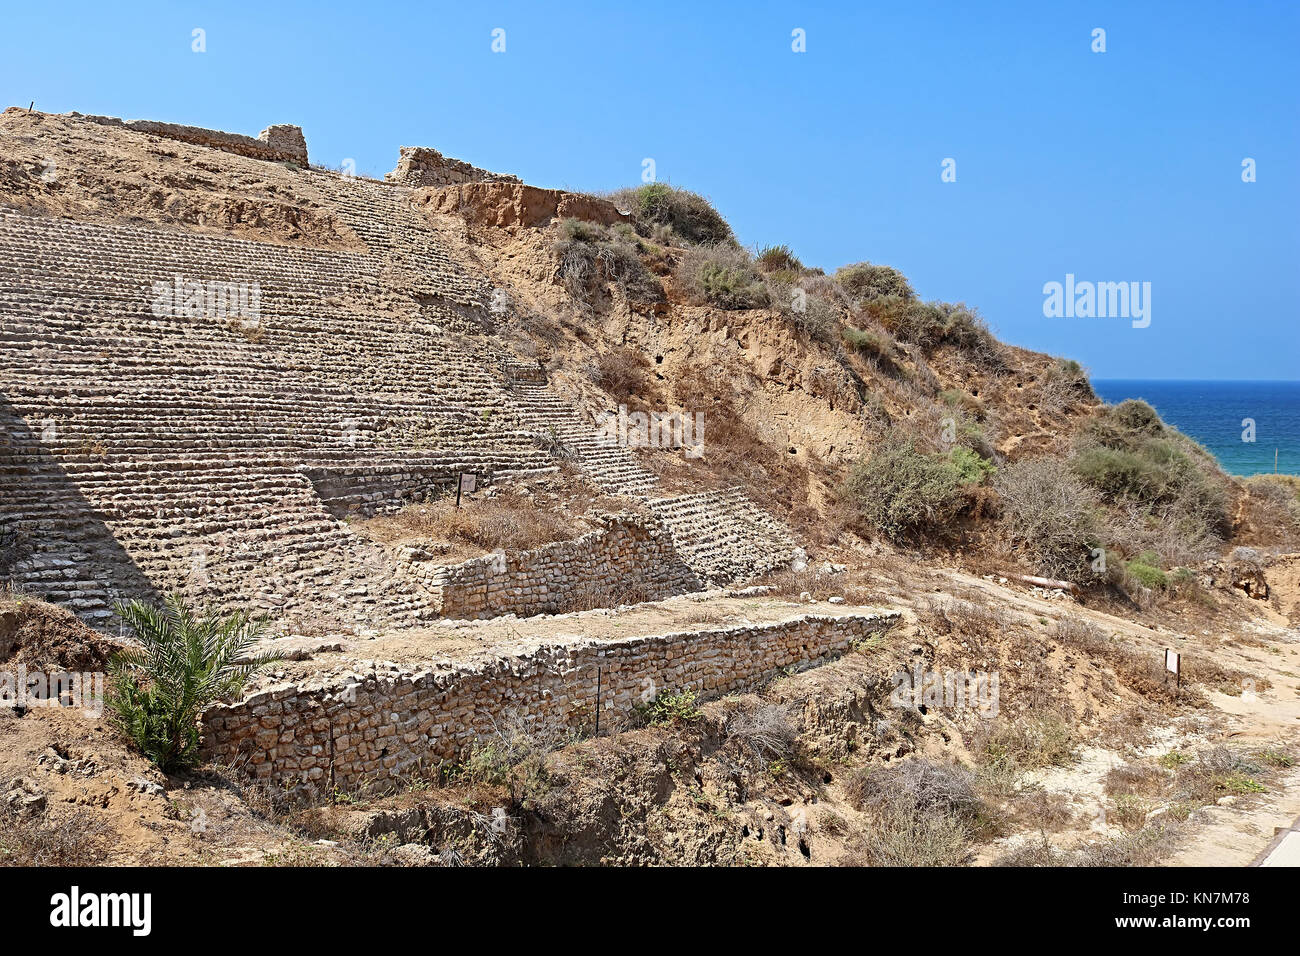 Canaanite city gate at Ashkelon, Israel, Middle East - Stock Image